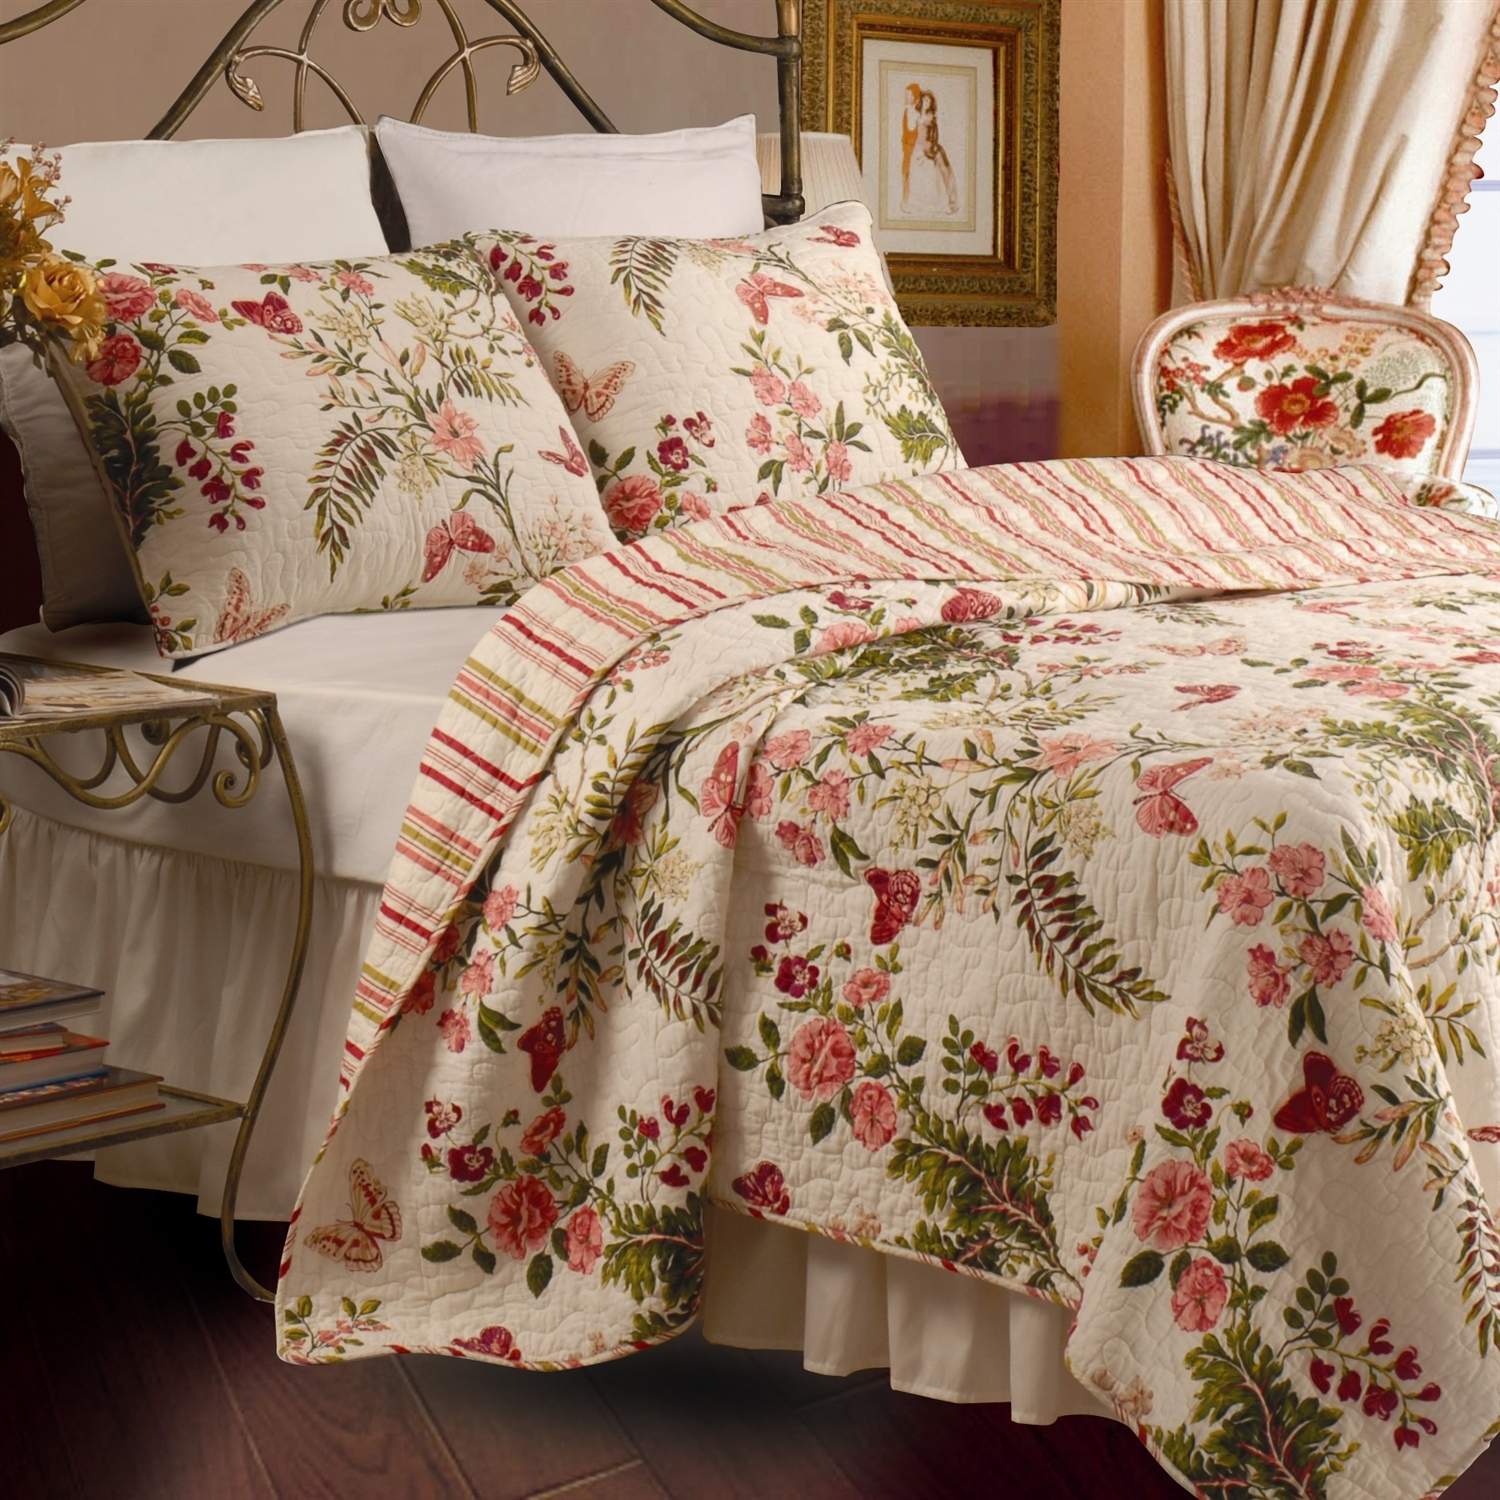 Full / Queen size Piece 100% Cotton Quilt Set Crimson Clover Floral: GQSFQ6371 : This Full / Queen size Piece 100% Cotton Quilt Set Crimson Clover Floral would be a great addition to your home. The quilt has a magnificent floral print that radiates with shades of crimson, pink, citronella and clover on a pale ivory back. Bring the outdoor into your bedroom; Intricate vermicelli quilting provides a rich surface texture; Reverses to a coordinating stripe; Oversized for better coverage; Machine washable; Full / Queen and King set includes 1 quilt and 2 standard shams; Twin set includes 1 quilt and 1 standard sham; Color: Multi; Product Type: Quilt/ Coverlet set.